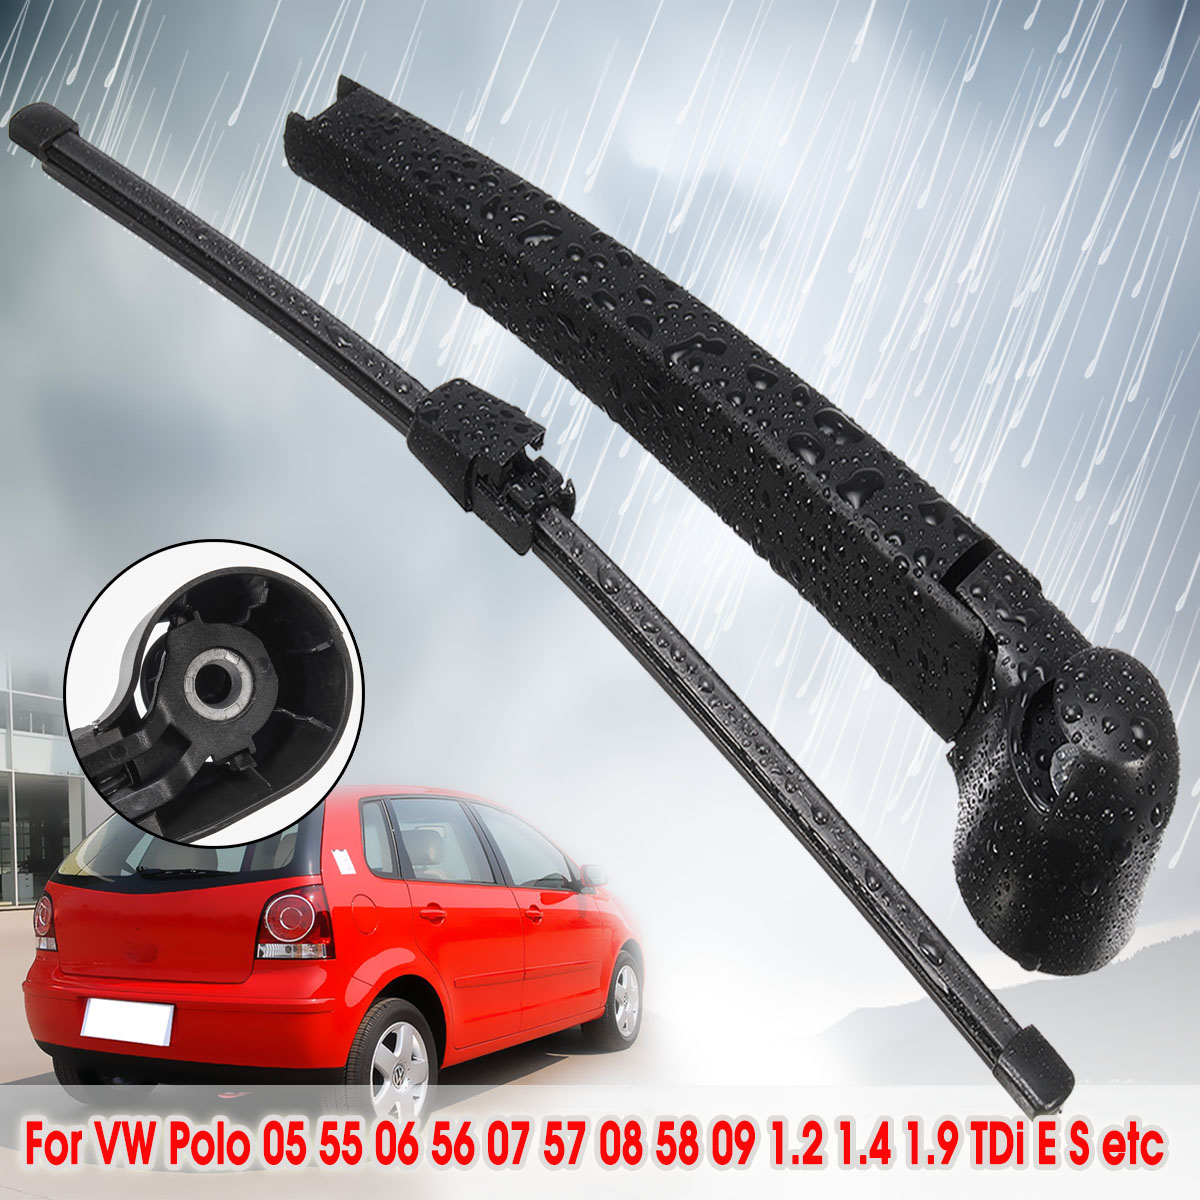 325mm Car Rear Windscreen Wipers Wiper Arm Blade For VW Polo 2005 55 2006 56 2007 57 2008 58 2009 1.2 1.4 1.9 TDi E S